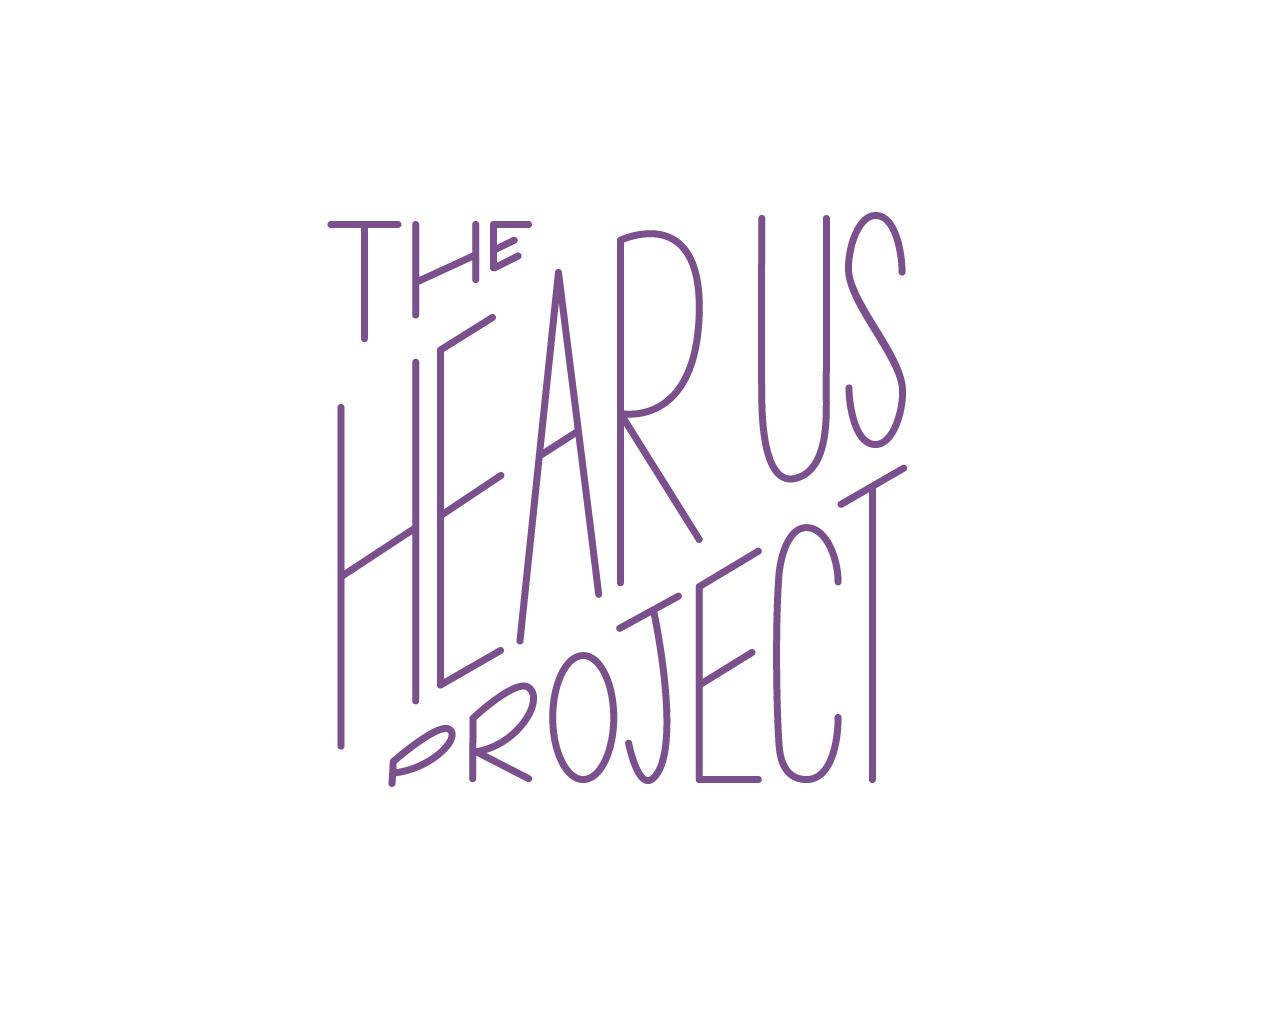 The-Hear-Us-Project-Vector-Logo_updated_purple_thin